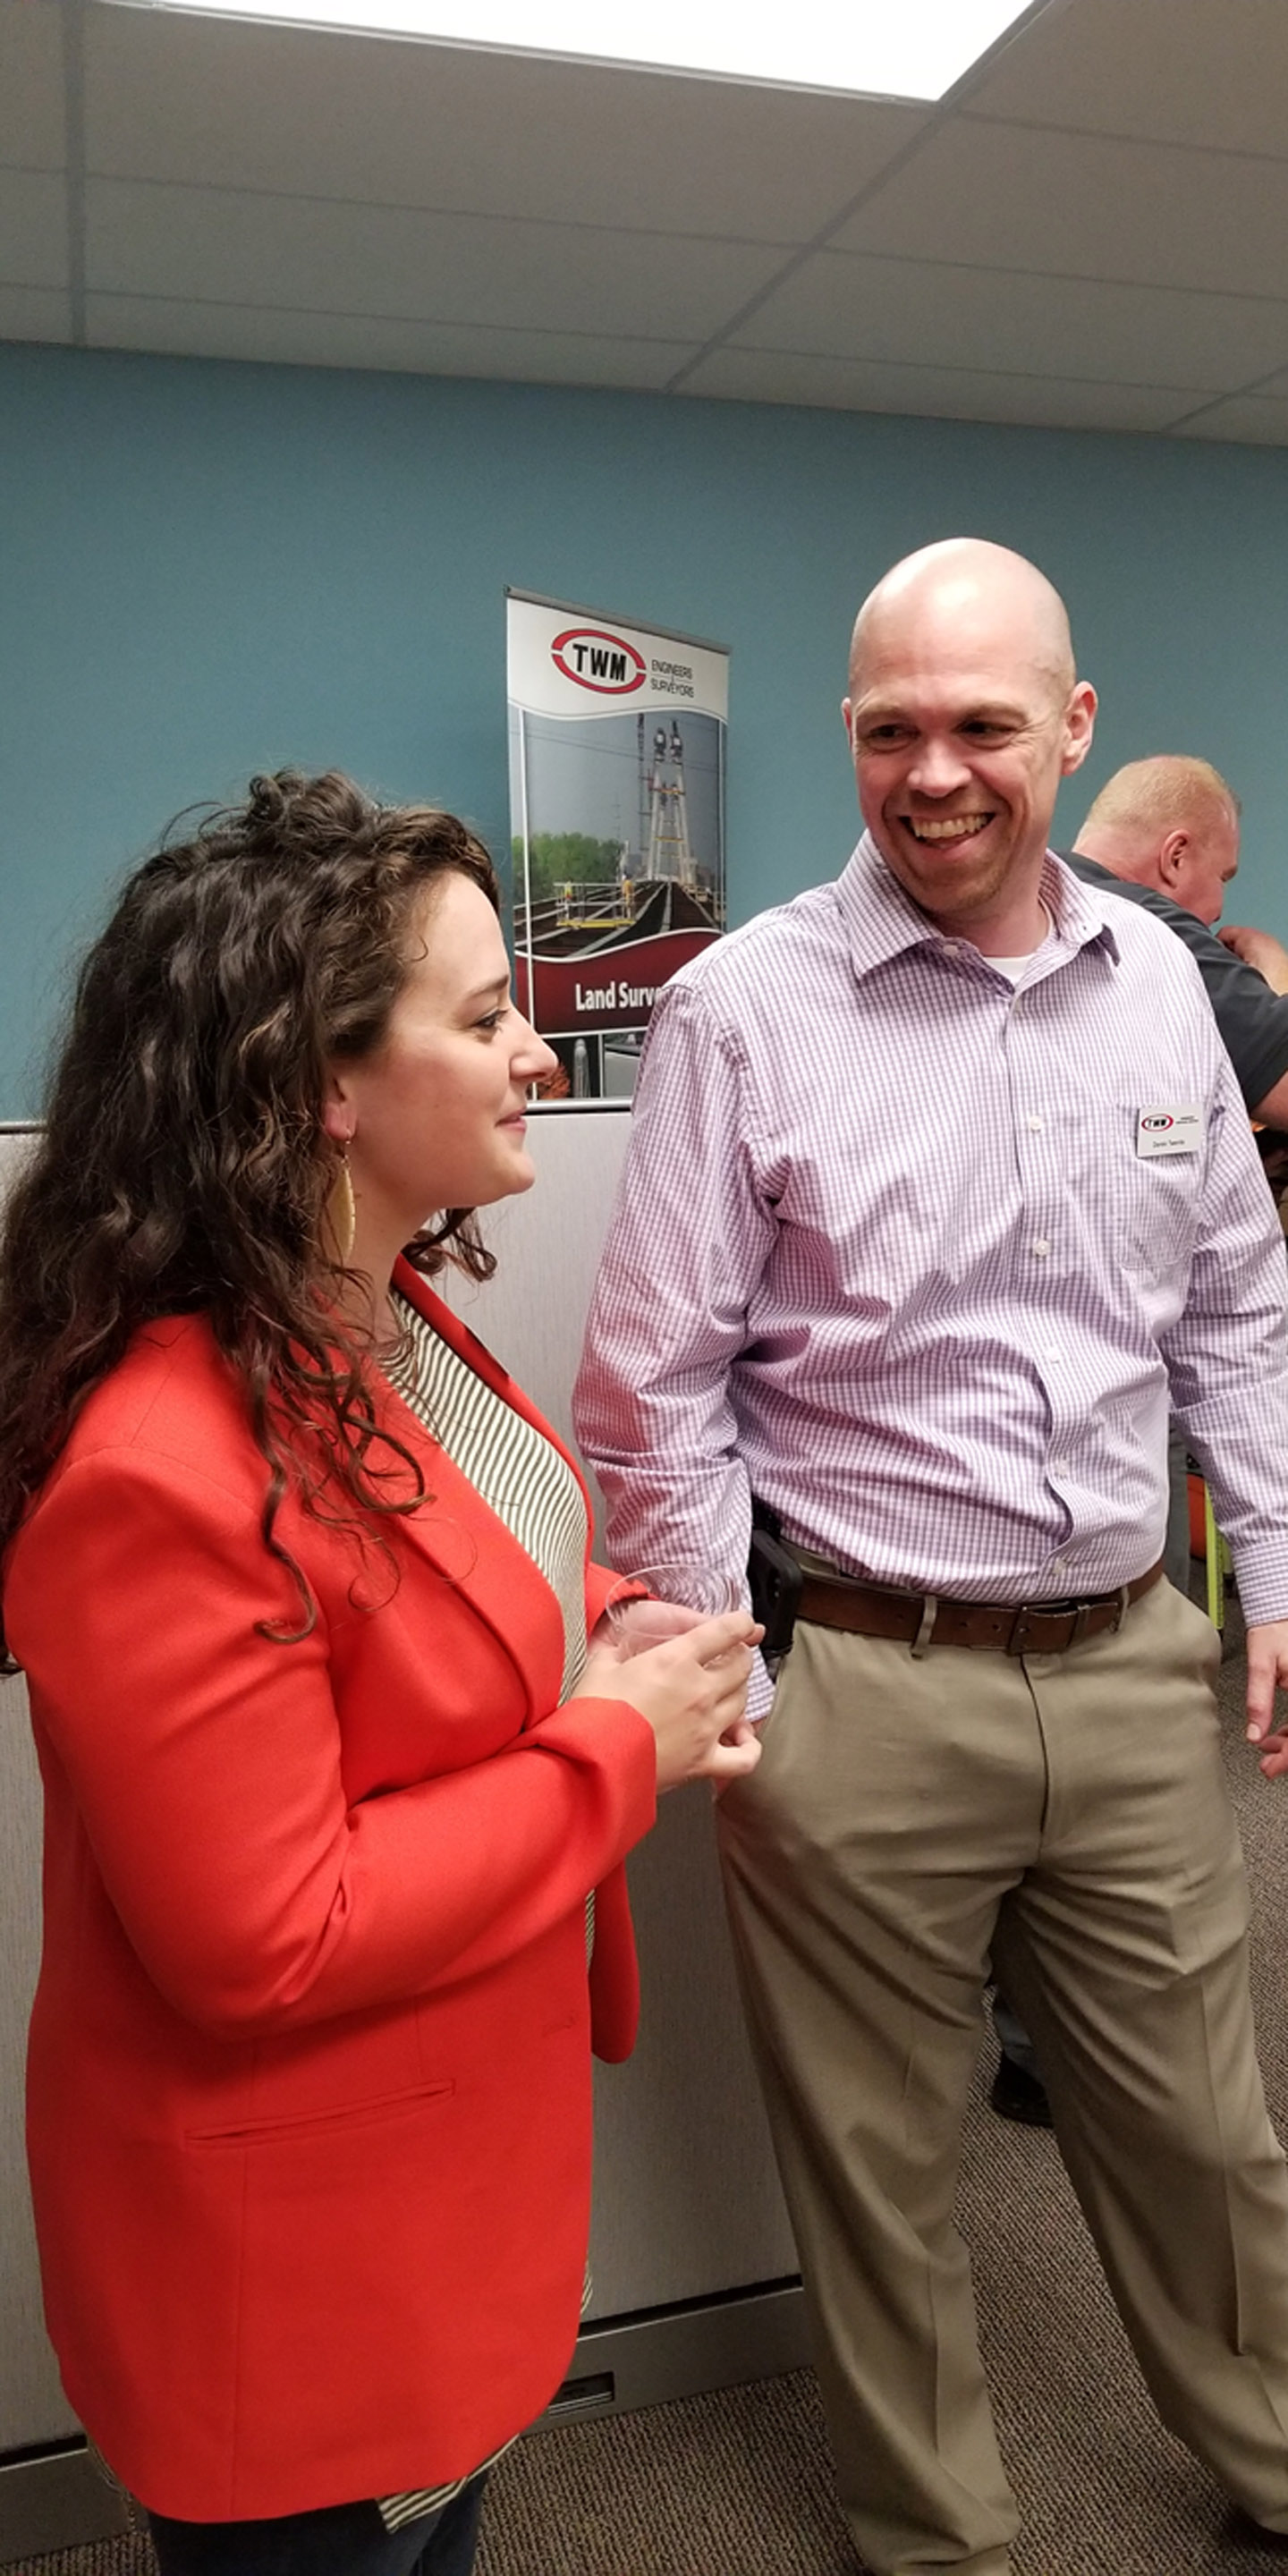 TWM's Geospatial Group Hosts Business After-Hours Event in Peoria